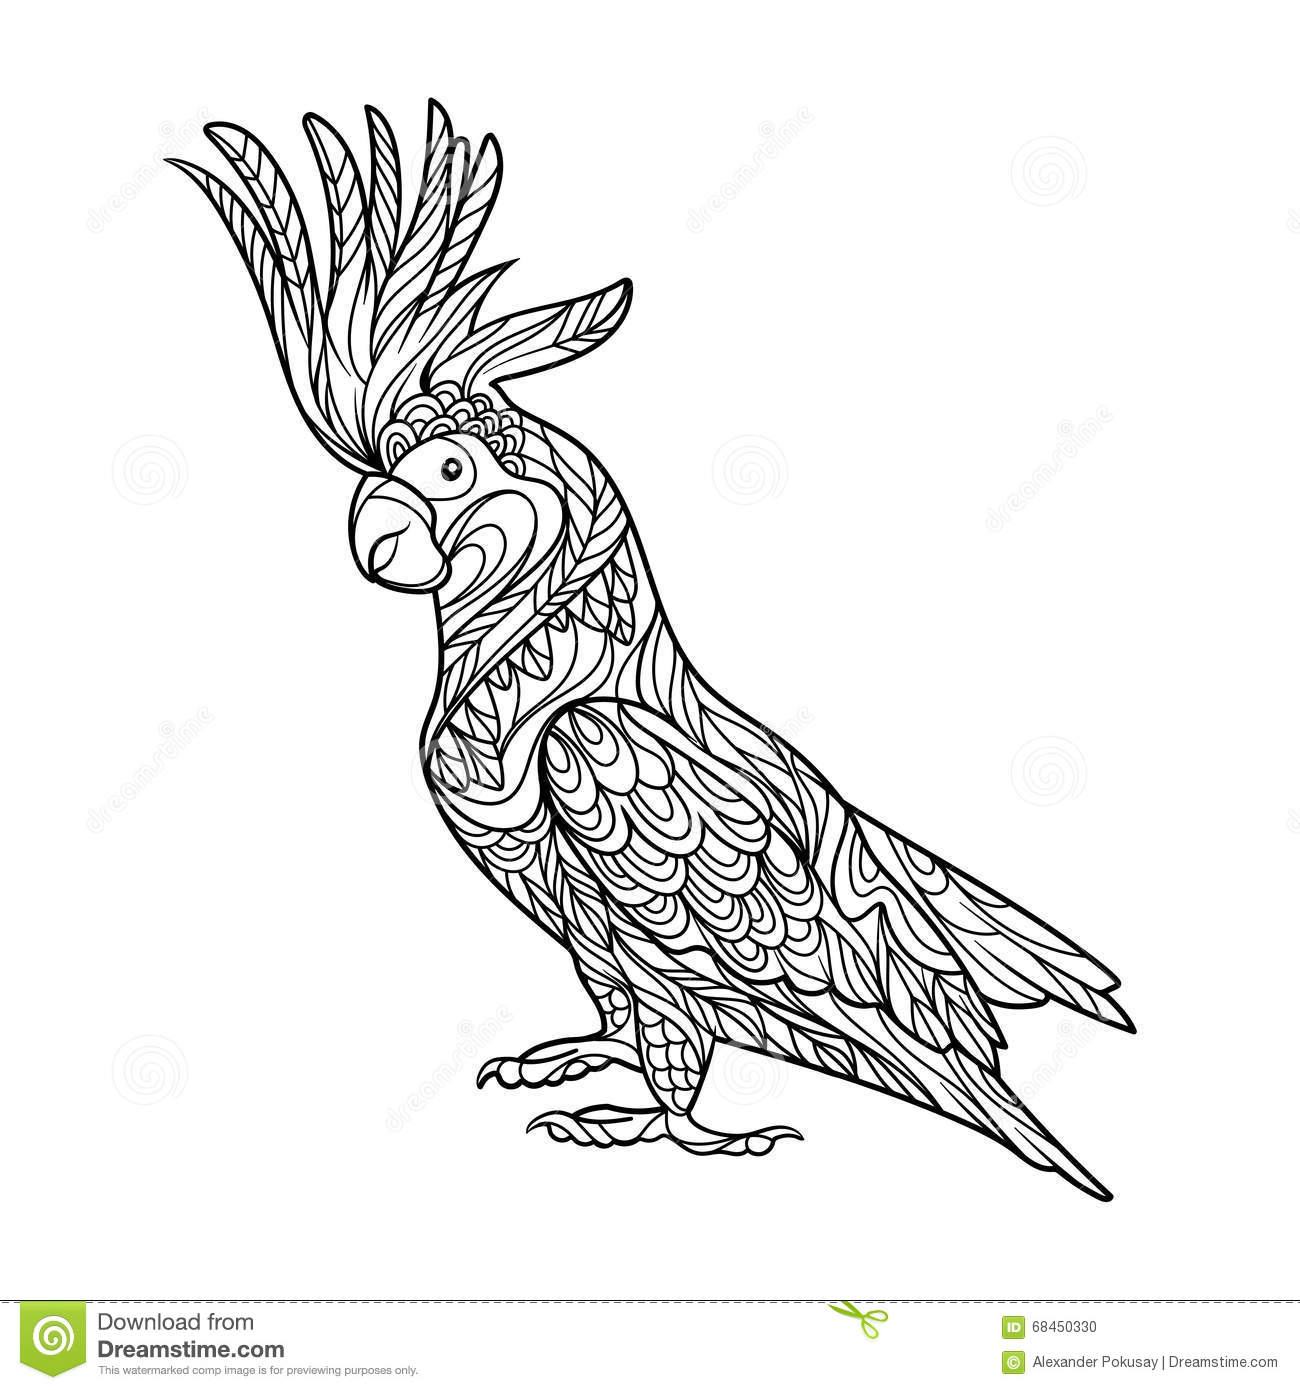 Royalty Free Vector Download Cockatoo Parrot Coloring Book For Adults